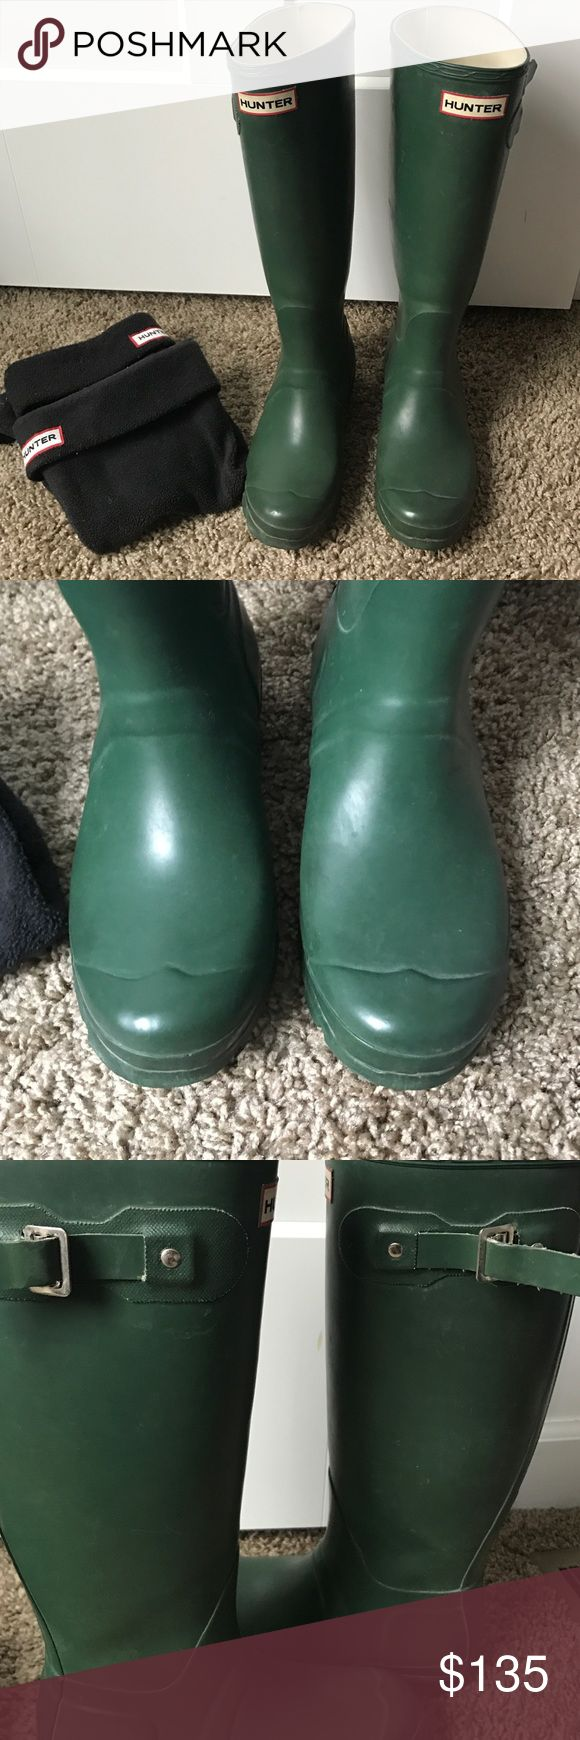 ❗️SALE❗️Hunter boots with socks GUC size 6 Pair of tall matte green Hunter boots with black socks included. They are used but in really great condition. Nothing beats the quality of these boots. I love them but selling because I am petite and needed the shorter boots. Make me an offer! Size USA 4M/5F EU 35/36 price firm Hunter Boots Shoes Winter & Rain Boots